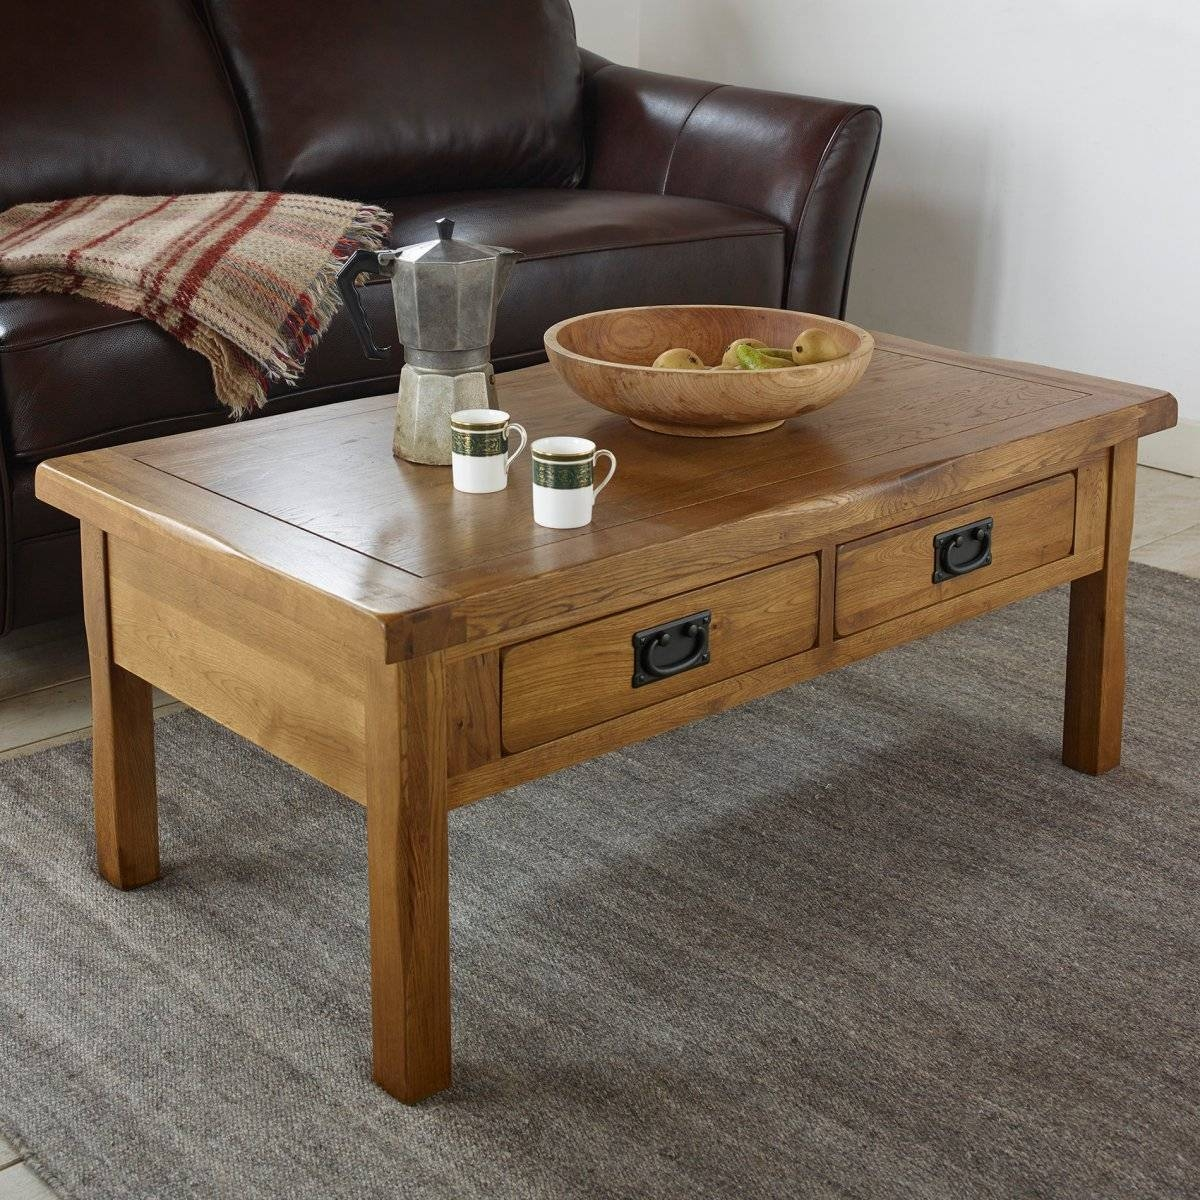 Original Rustic 4 Drawer Coffee Table In Solid Oak Inside Oak Coffee Table With Storage (View 10 of 15)